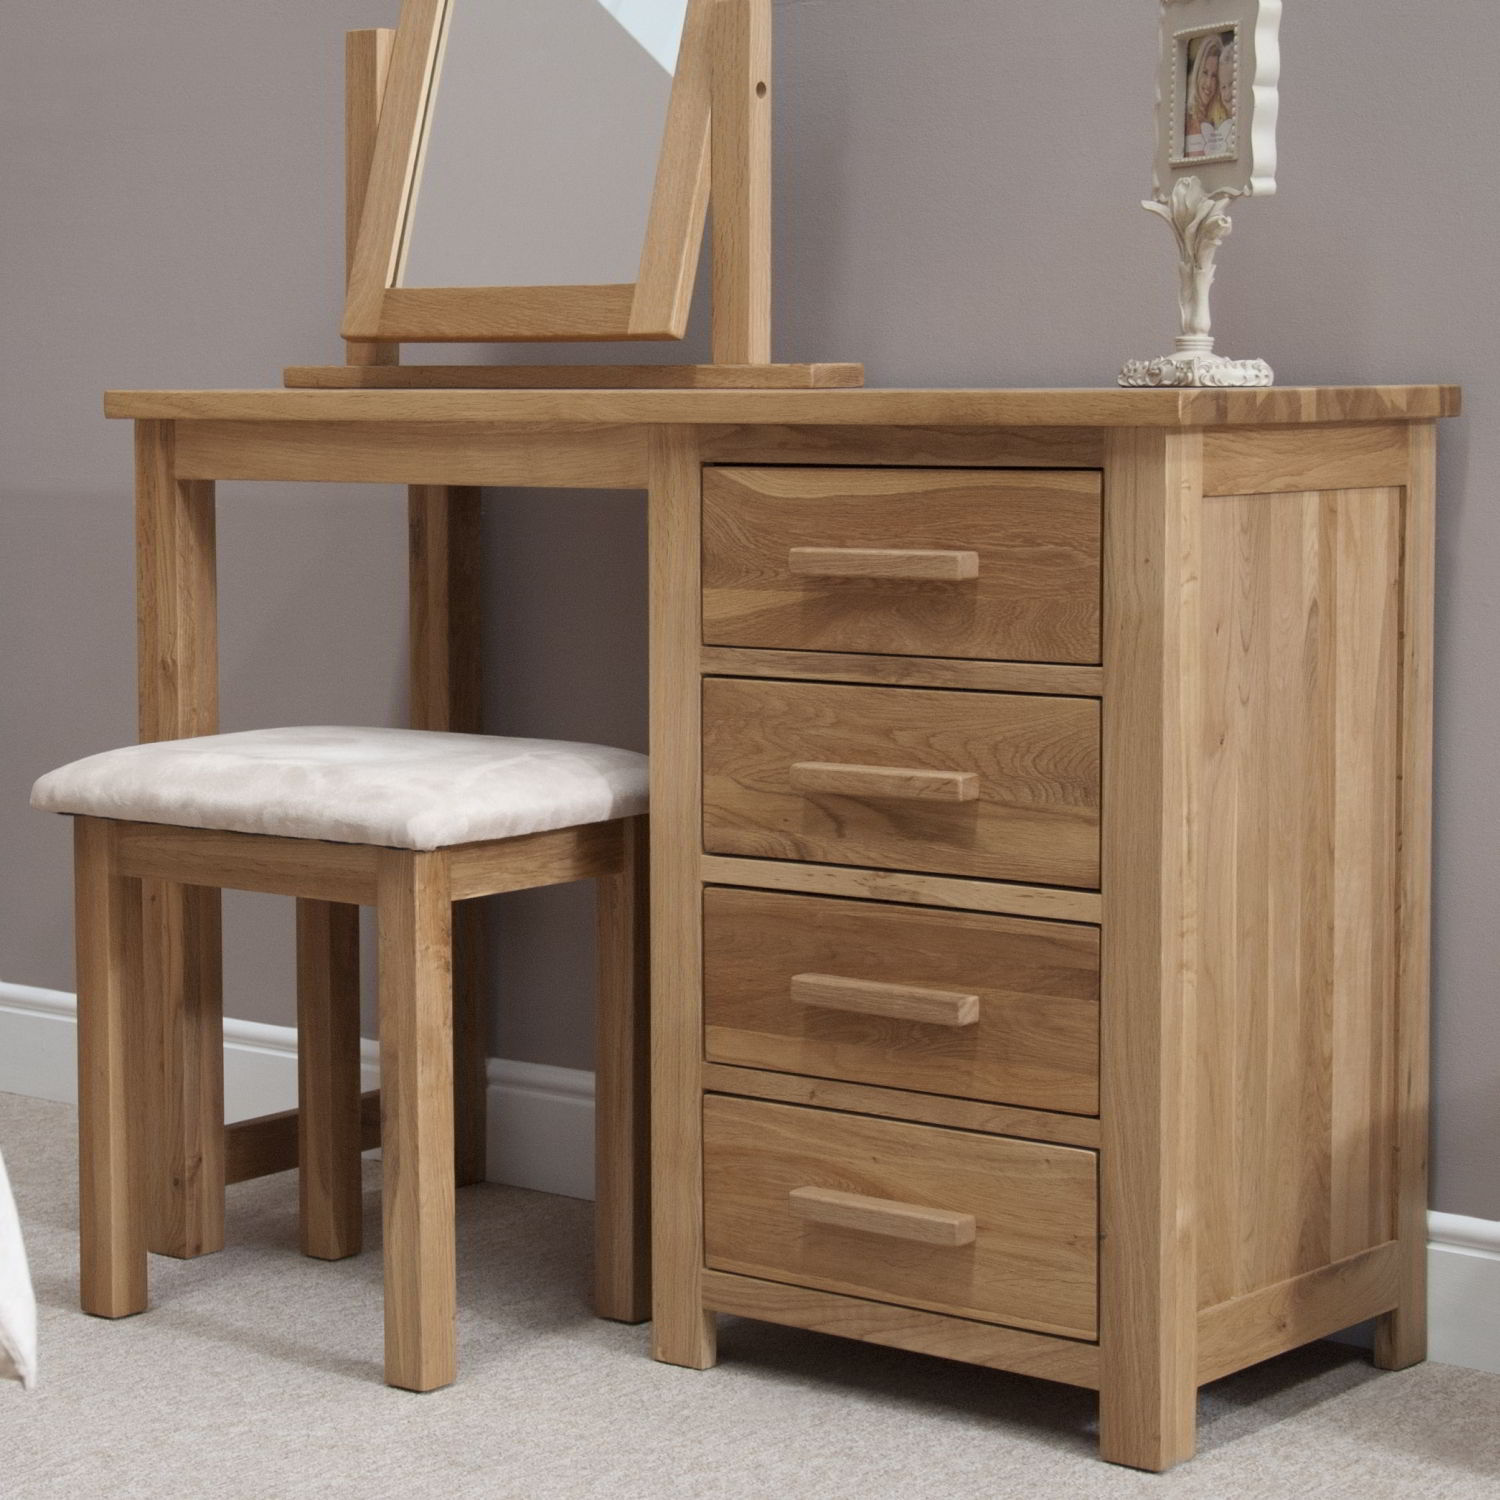 Eton solid oak contemporary bedroom furniture dressing for Dressing table